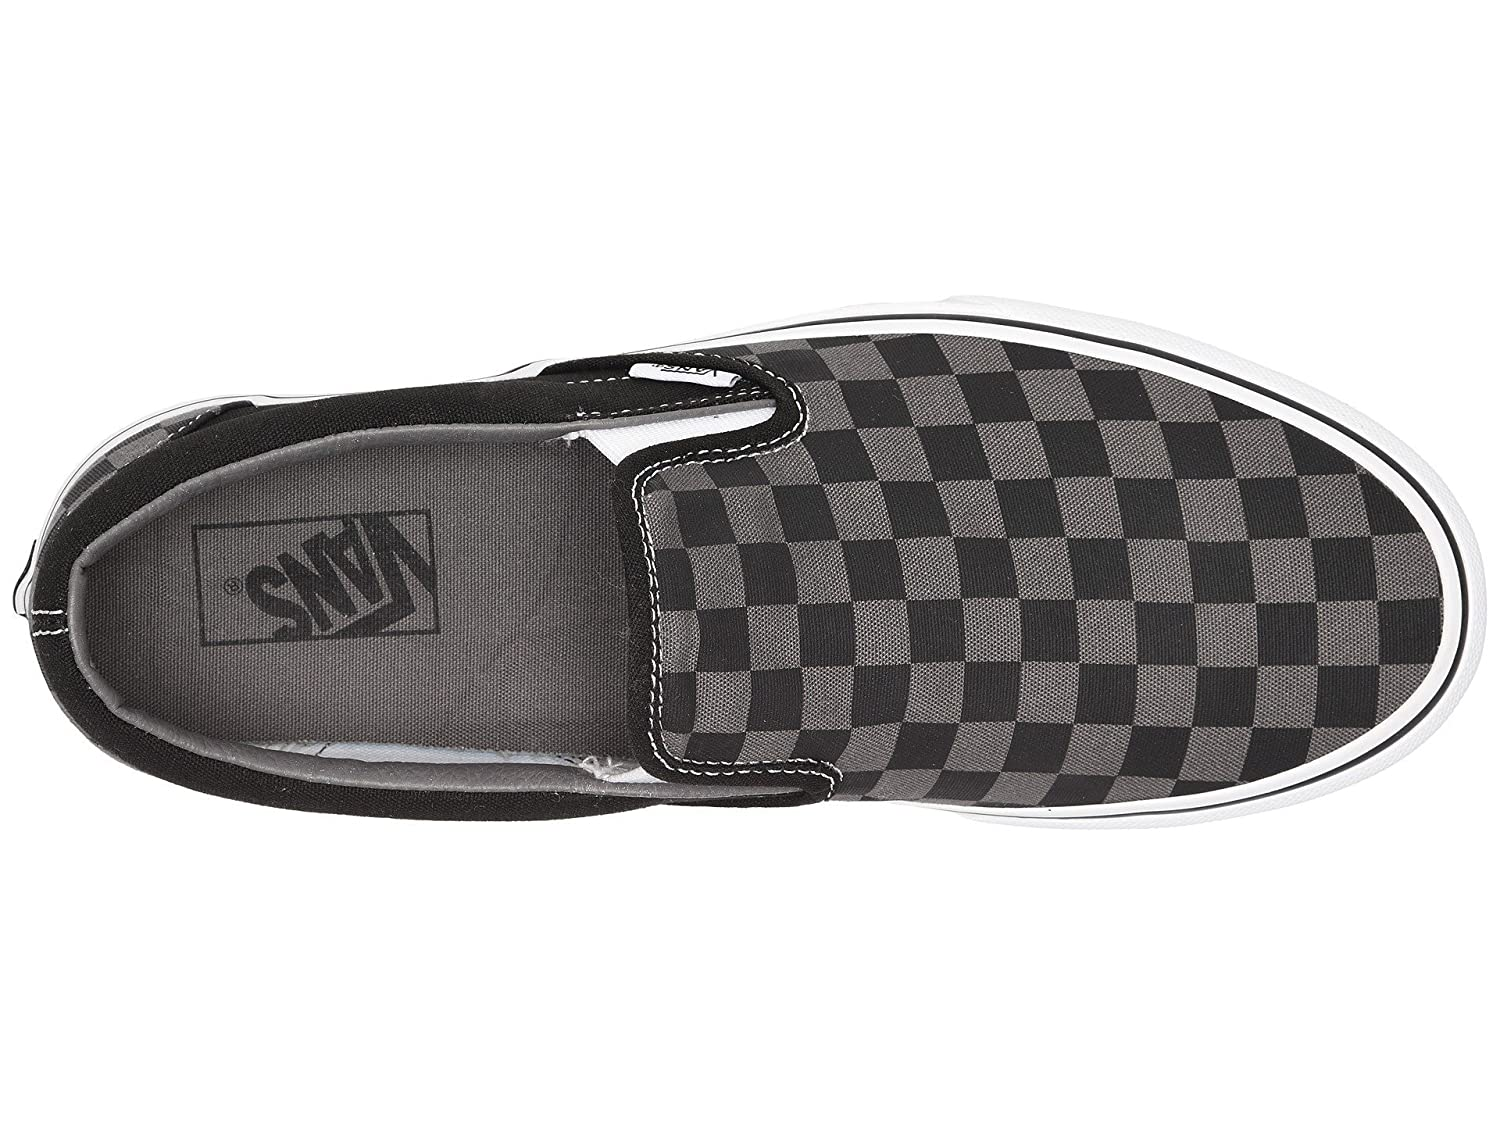 Vans AUTHENTIC, Unisex-Erwachsene Unisex-Erwachsene AUTHENTIC, Sneakers schwarz/Pewter Checkerboard d00fe5